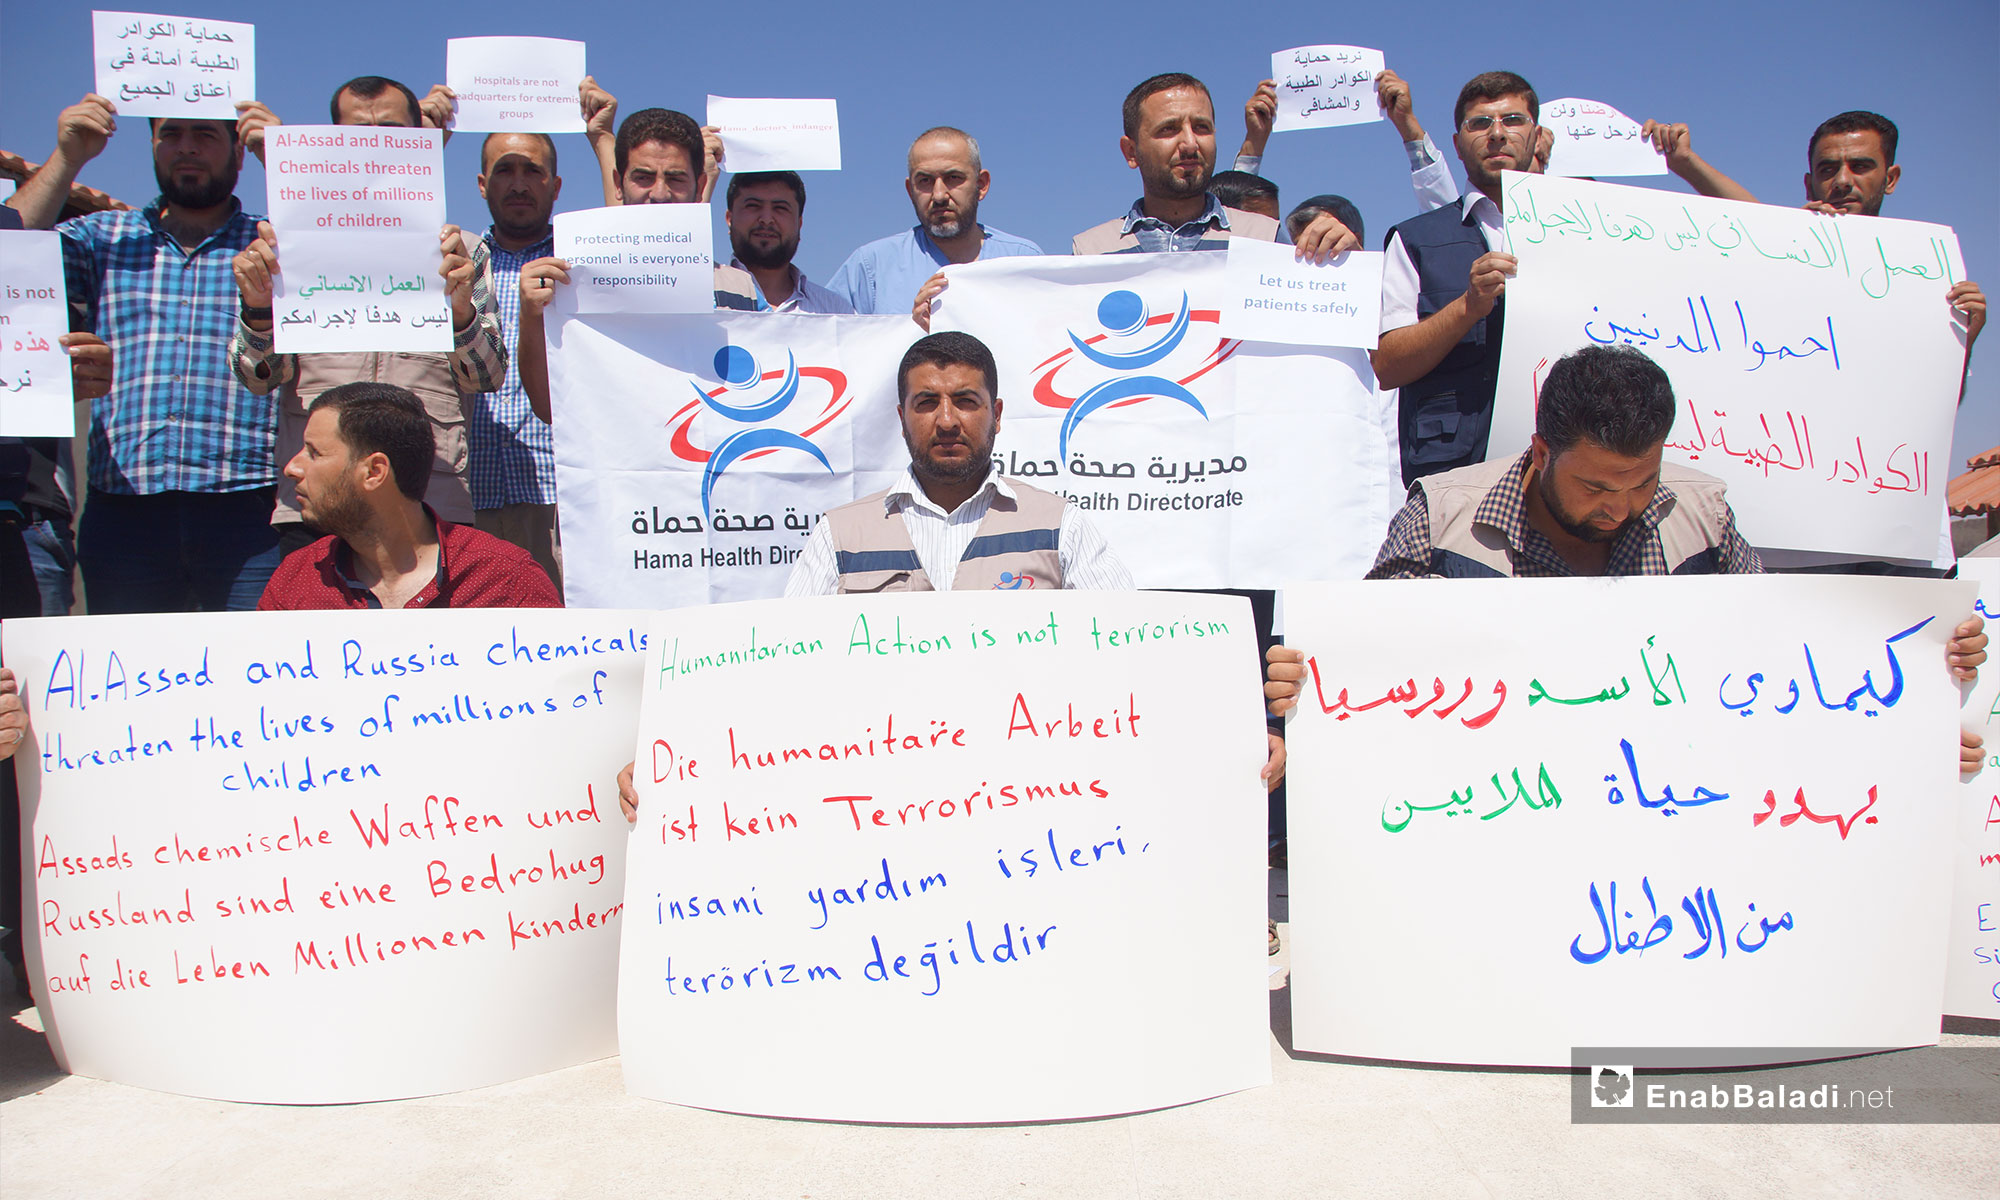 A protest denouncing the aerial attacks of the Syrian regime and Russia's air force against the medical staffs at the Hama Healthcare Directorate – September 17, 2018